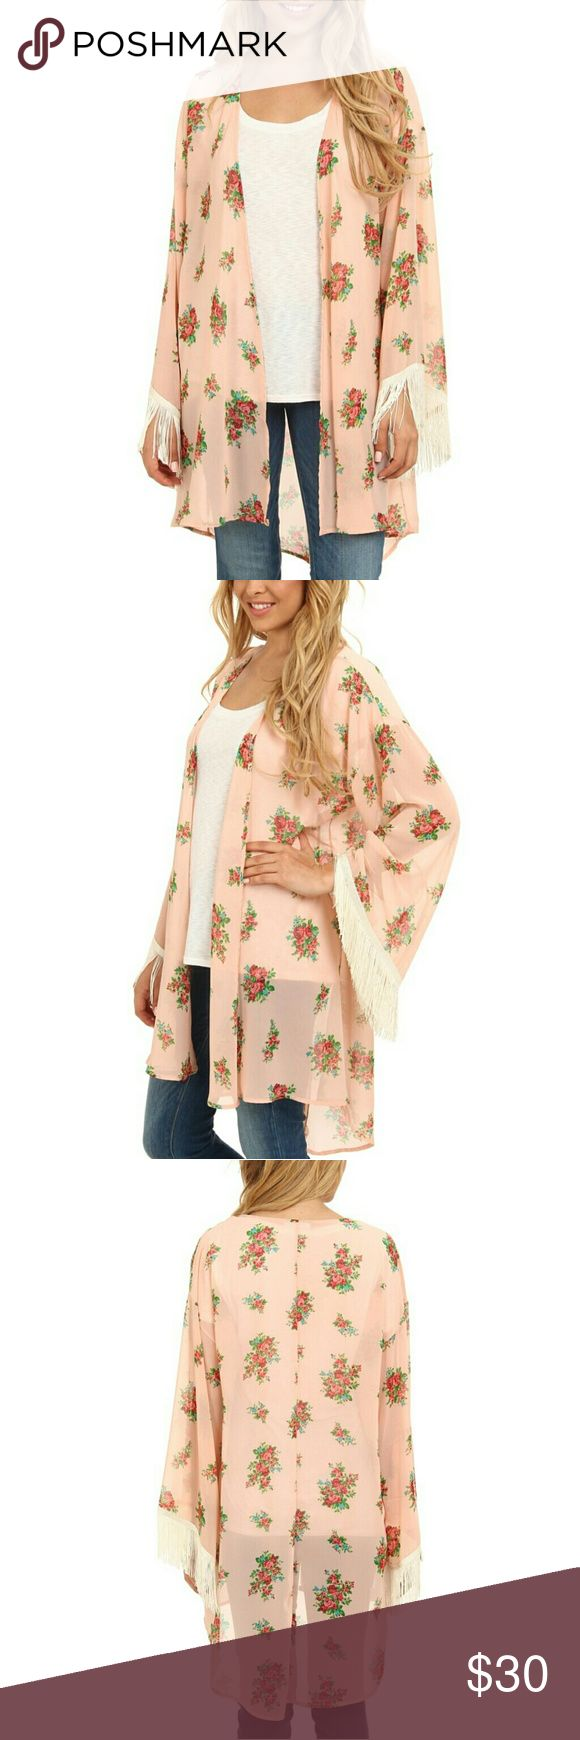 Gabriella Rocha Lucy floral print kimono, SM Brand new, never worn! The tags are not attached but it is brand new. Longer in the back, Beautiful detail on the sleeves, very feminine pattern. Very high quality Looks perfect over dresses and it can dress up any plain outfit  Msrp $69 Gabriella Rocha Jackets & Coats Blazers